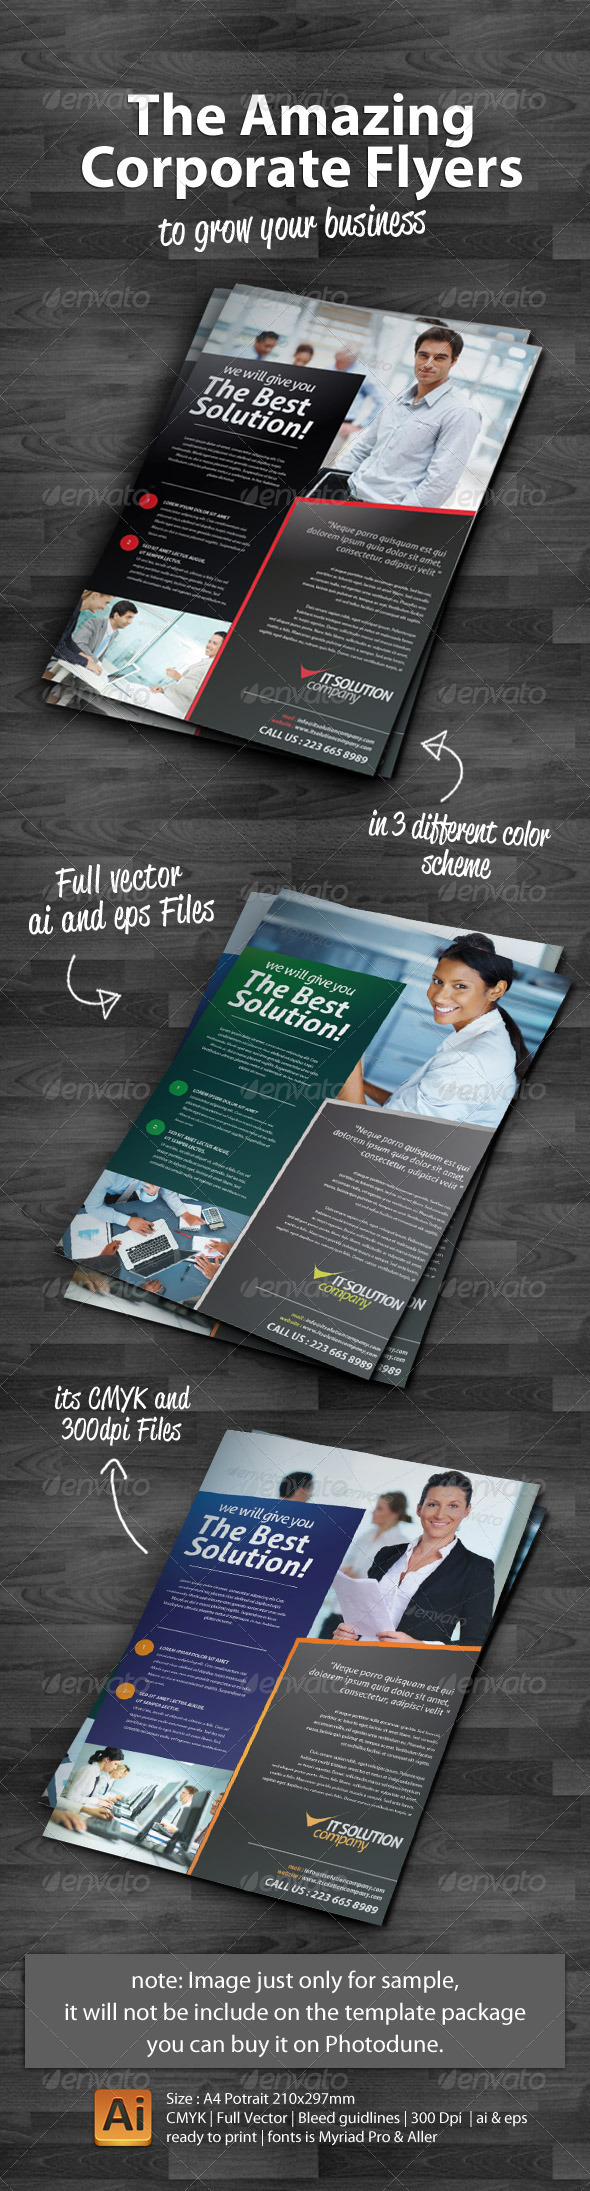 GraphicRiver The Amazing Corporate Flyers 2368798